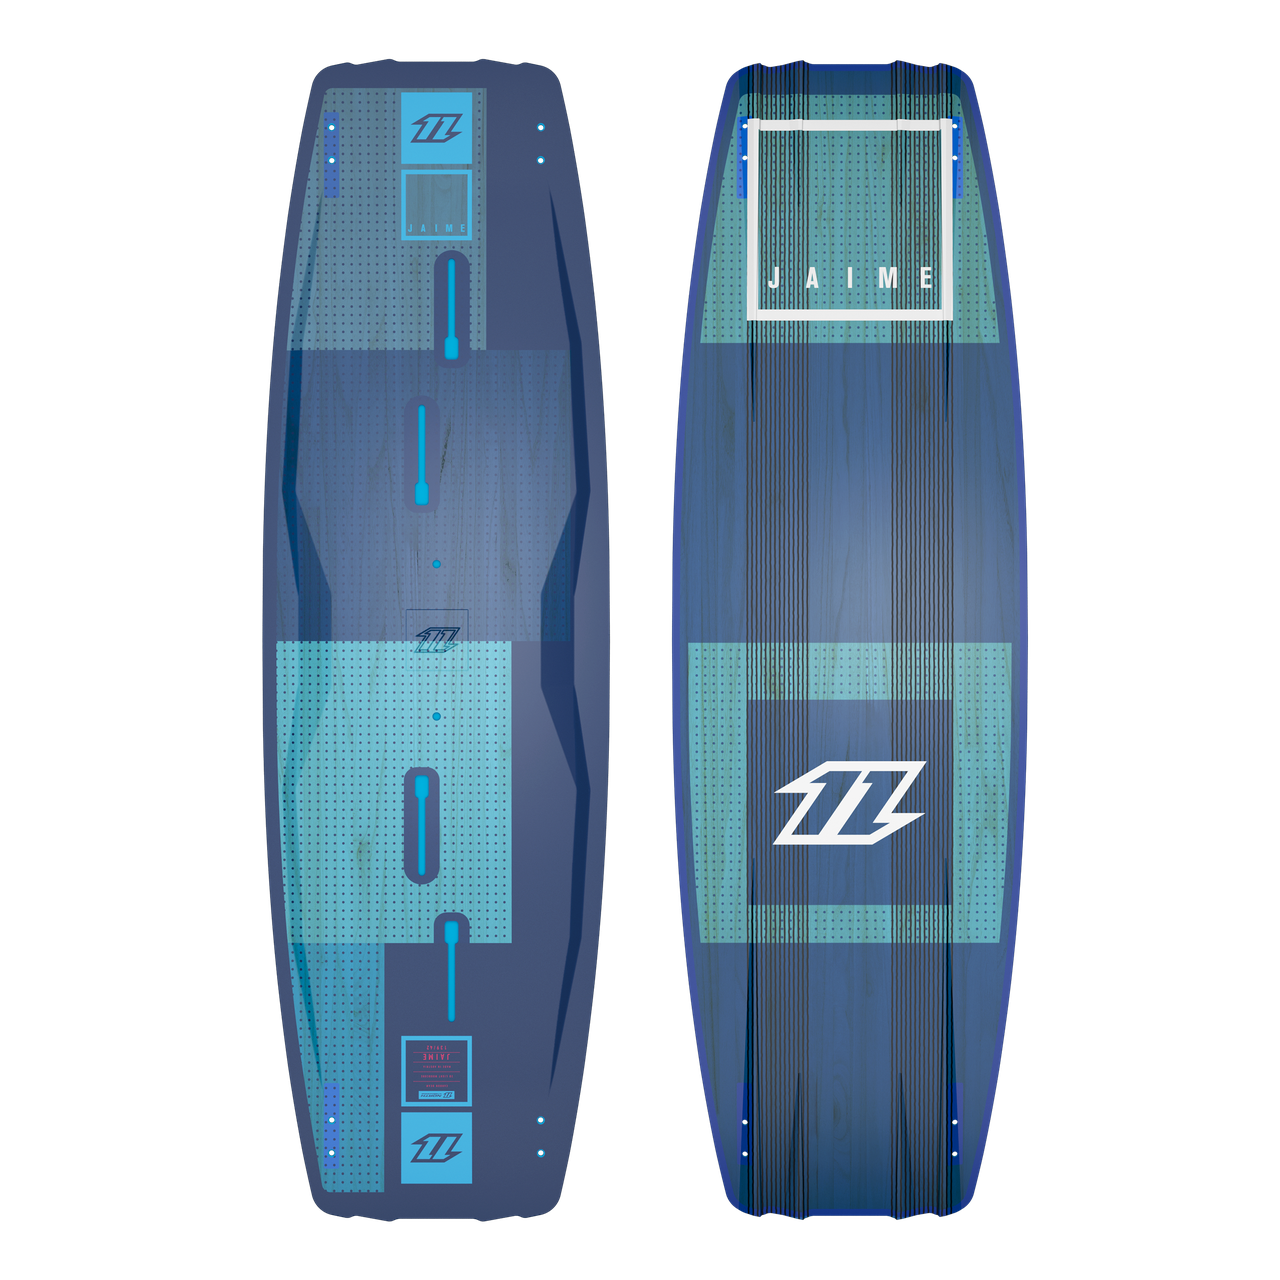 North 2 boards